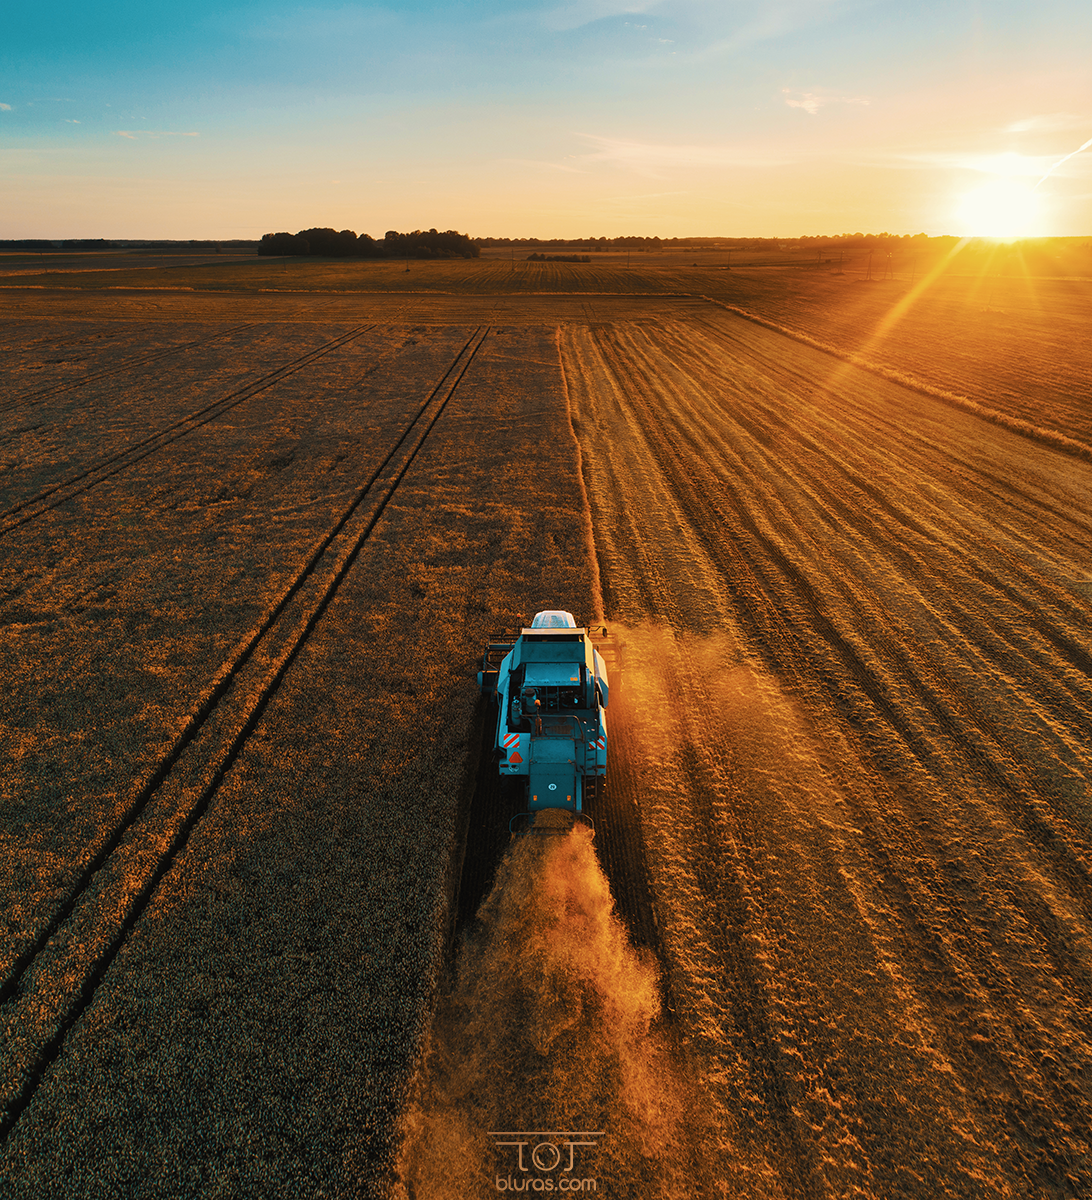 #Sunset #work in #Lithuania | Captured #yesterday using my #drone | http://www.bluras.com  #harvest #harvesting #dronephotography #photographer #aerialphotography #landscape #rostselmashpic.twitter.com/Mv67UilCRO